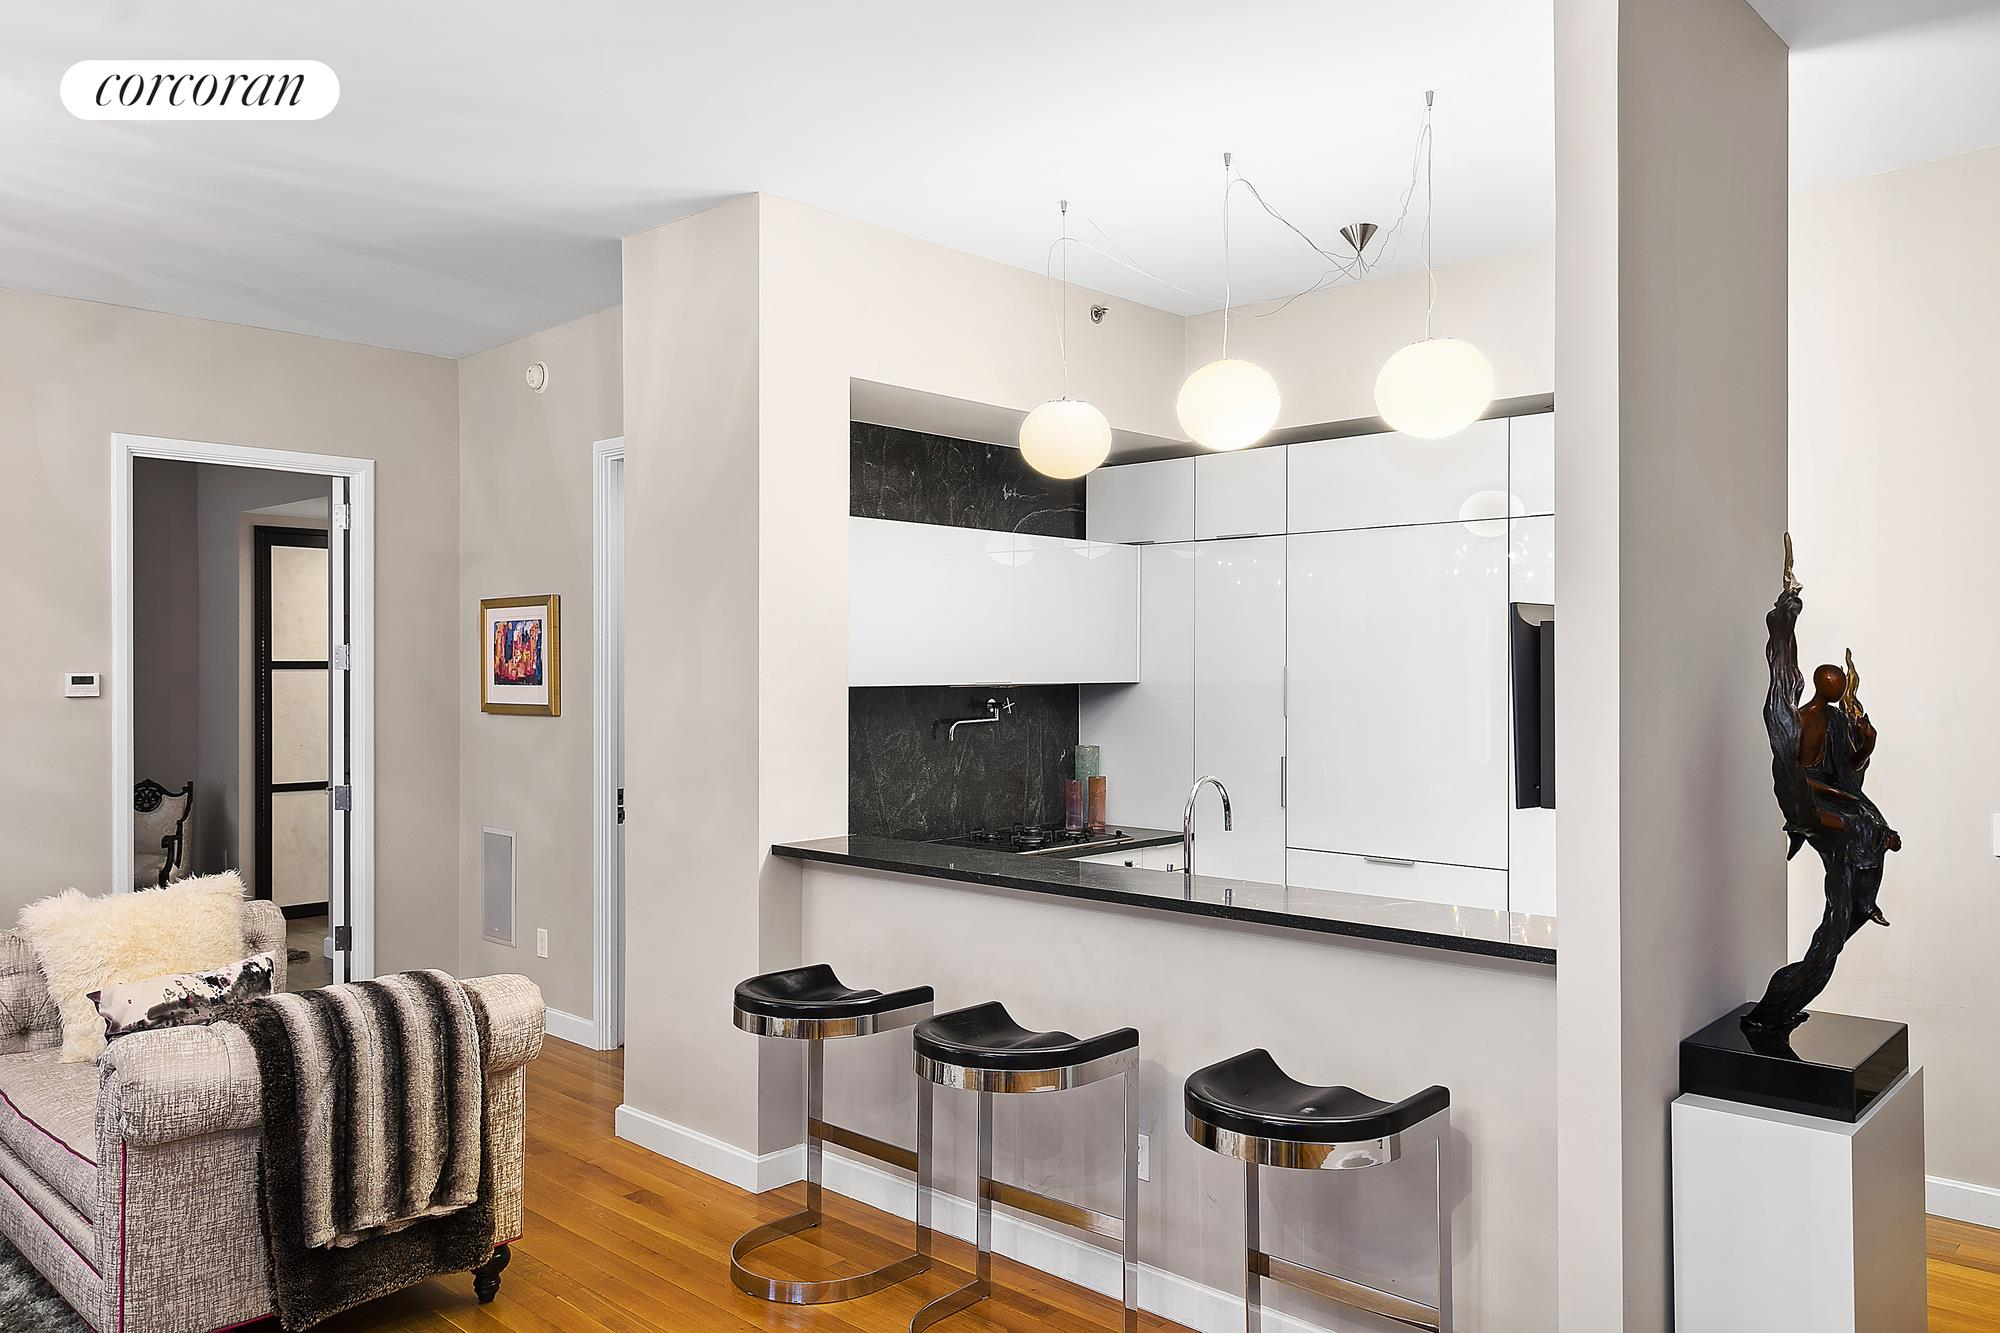 240 Park Ave South, 5C, Wide and spacious with high ceilings & wood floors